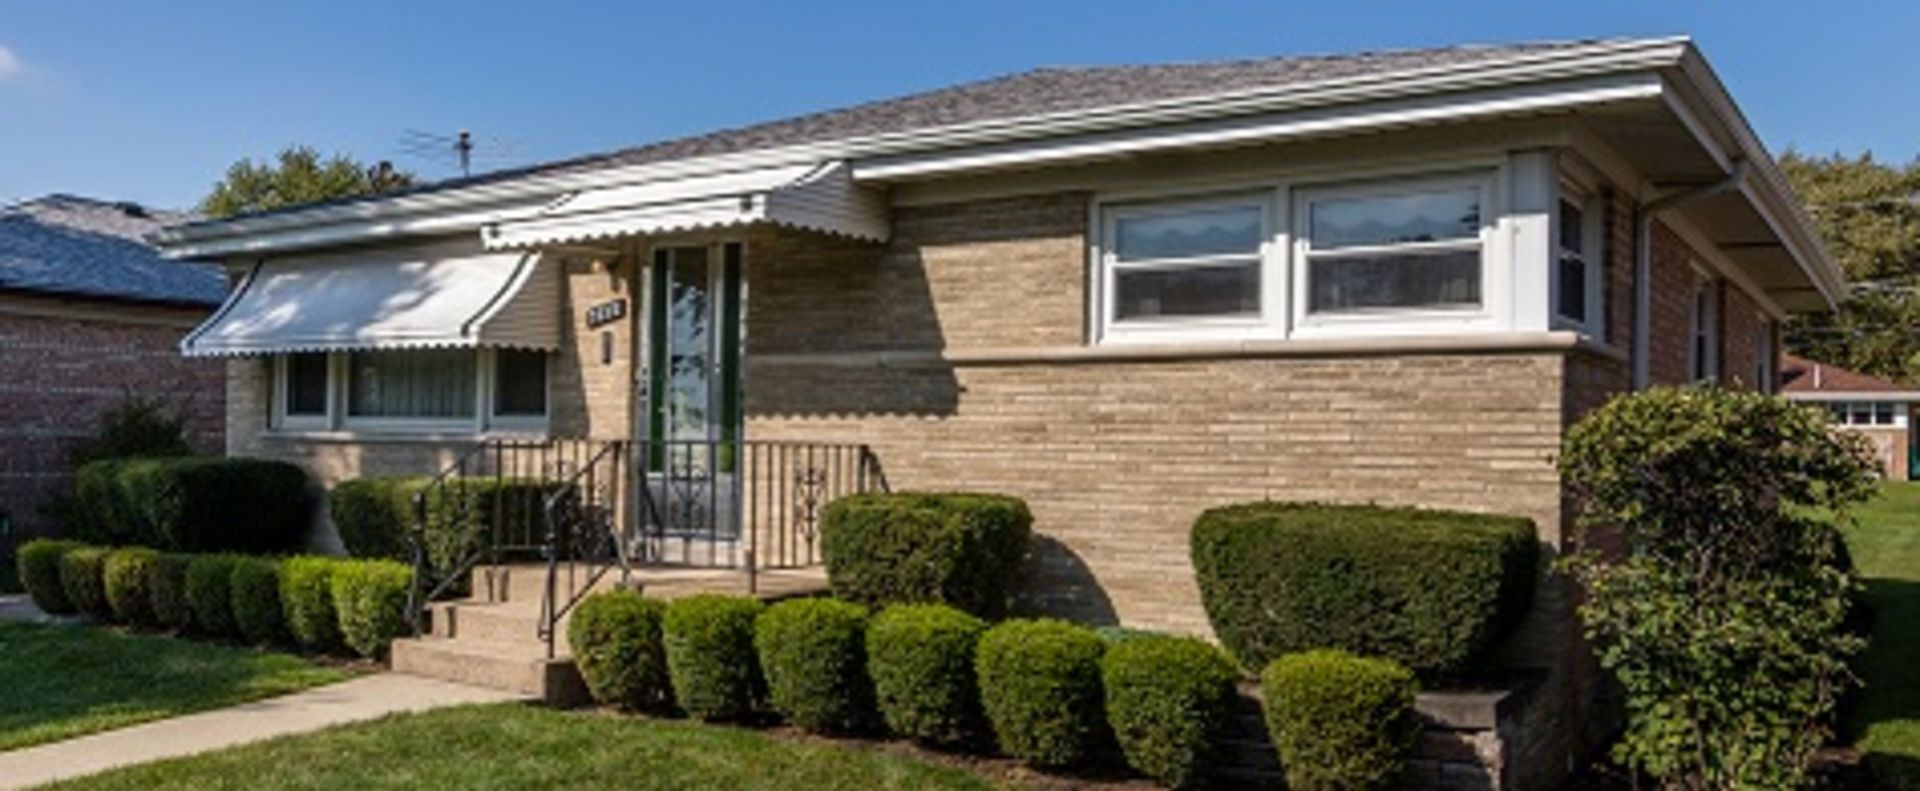 Open House, 7030 W Cleveland, Niles, IL 60714, Sunday November 5, 2017 from 1-3pm